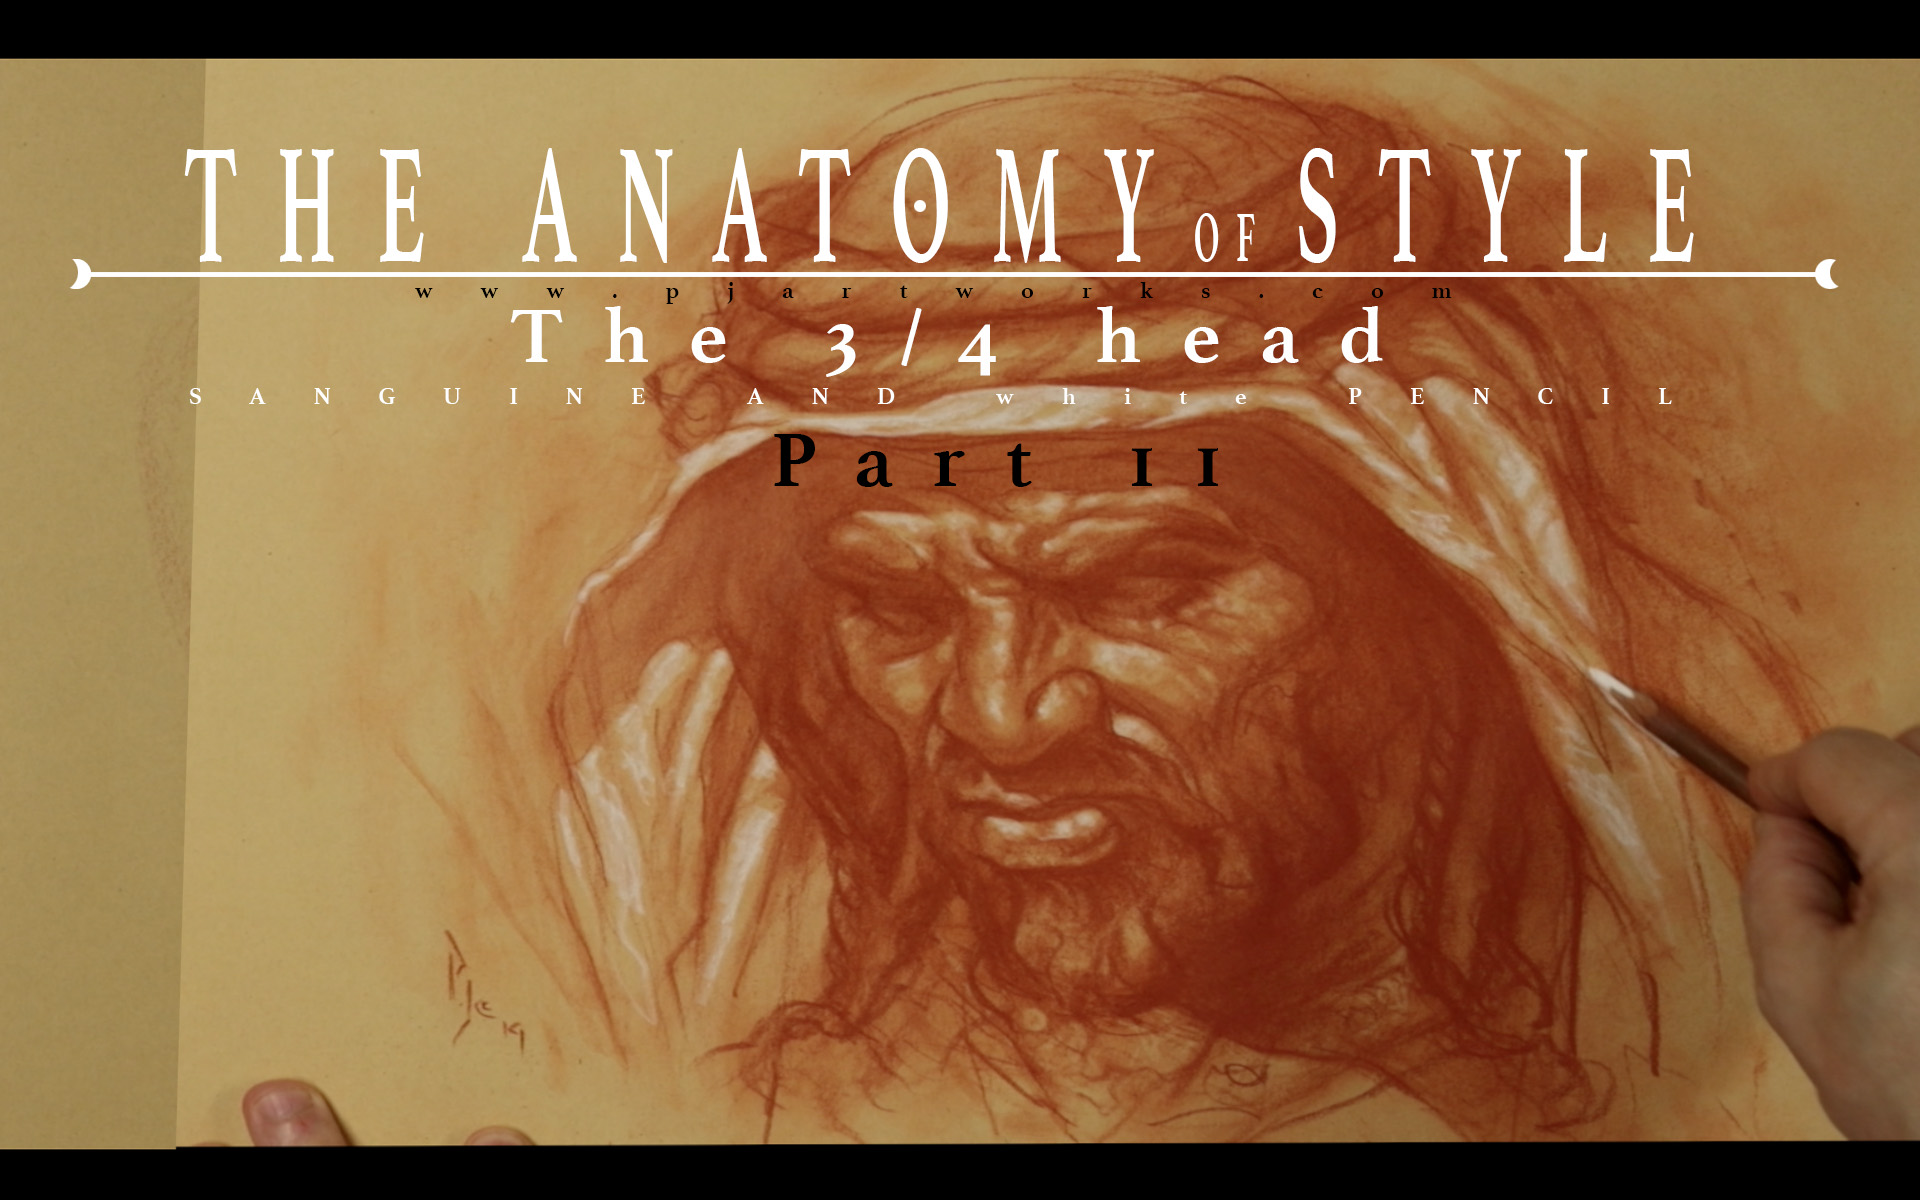 Anatomy of the quart head 2 titlelowres.jpg